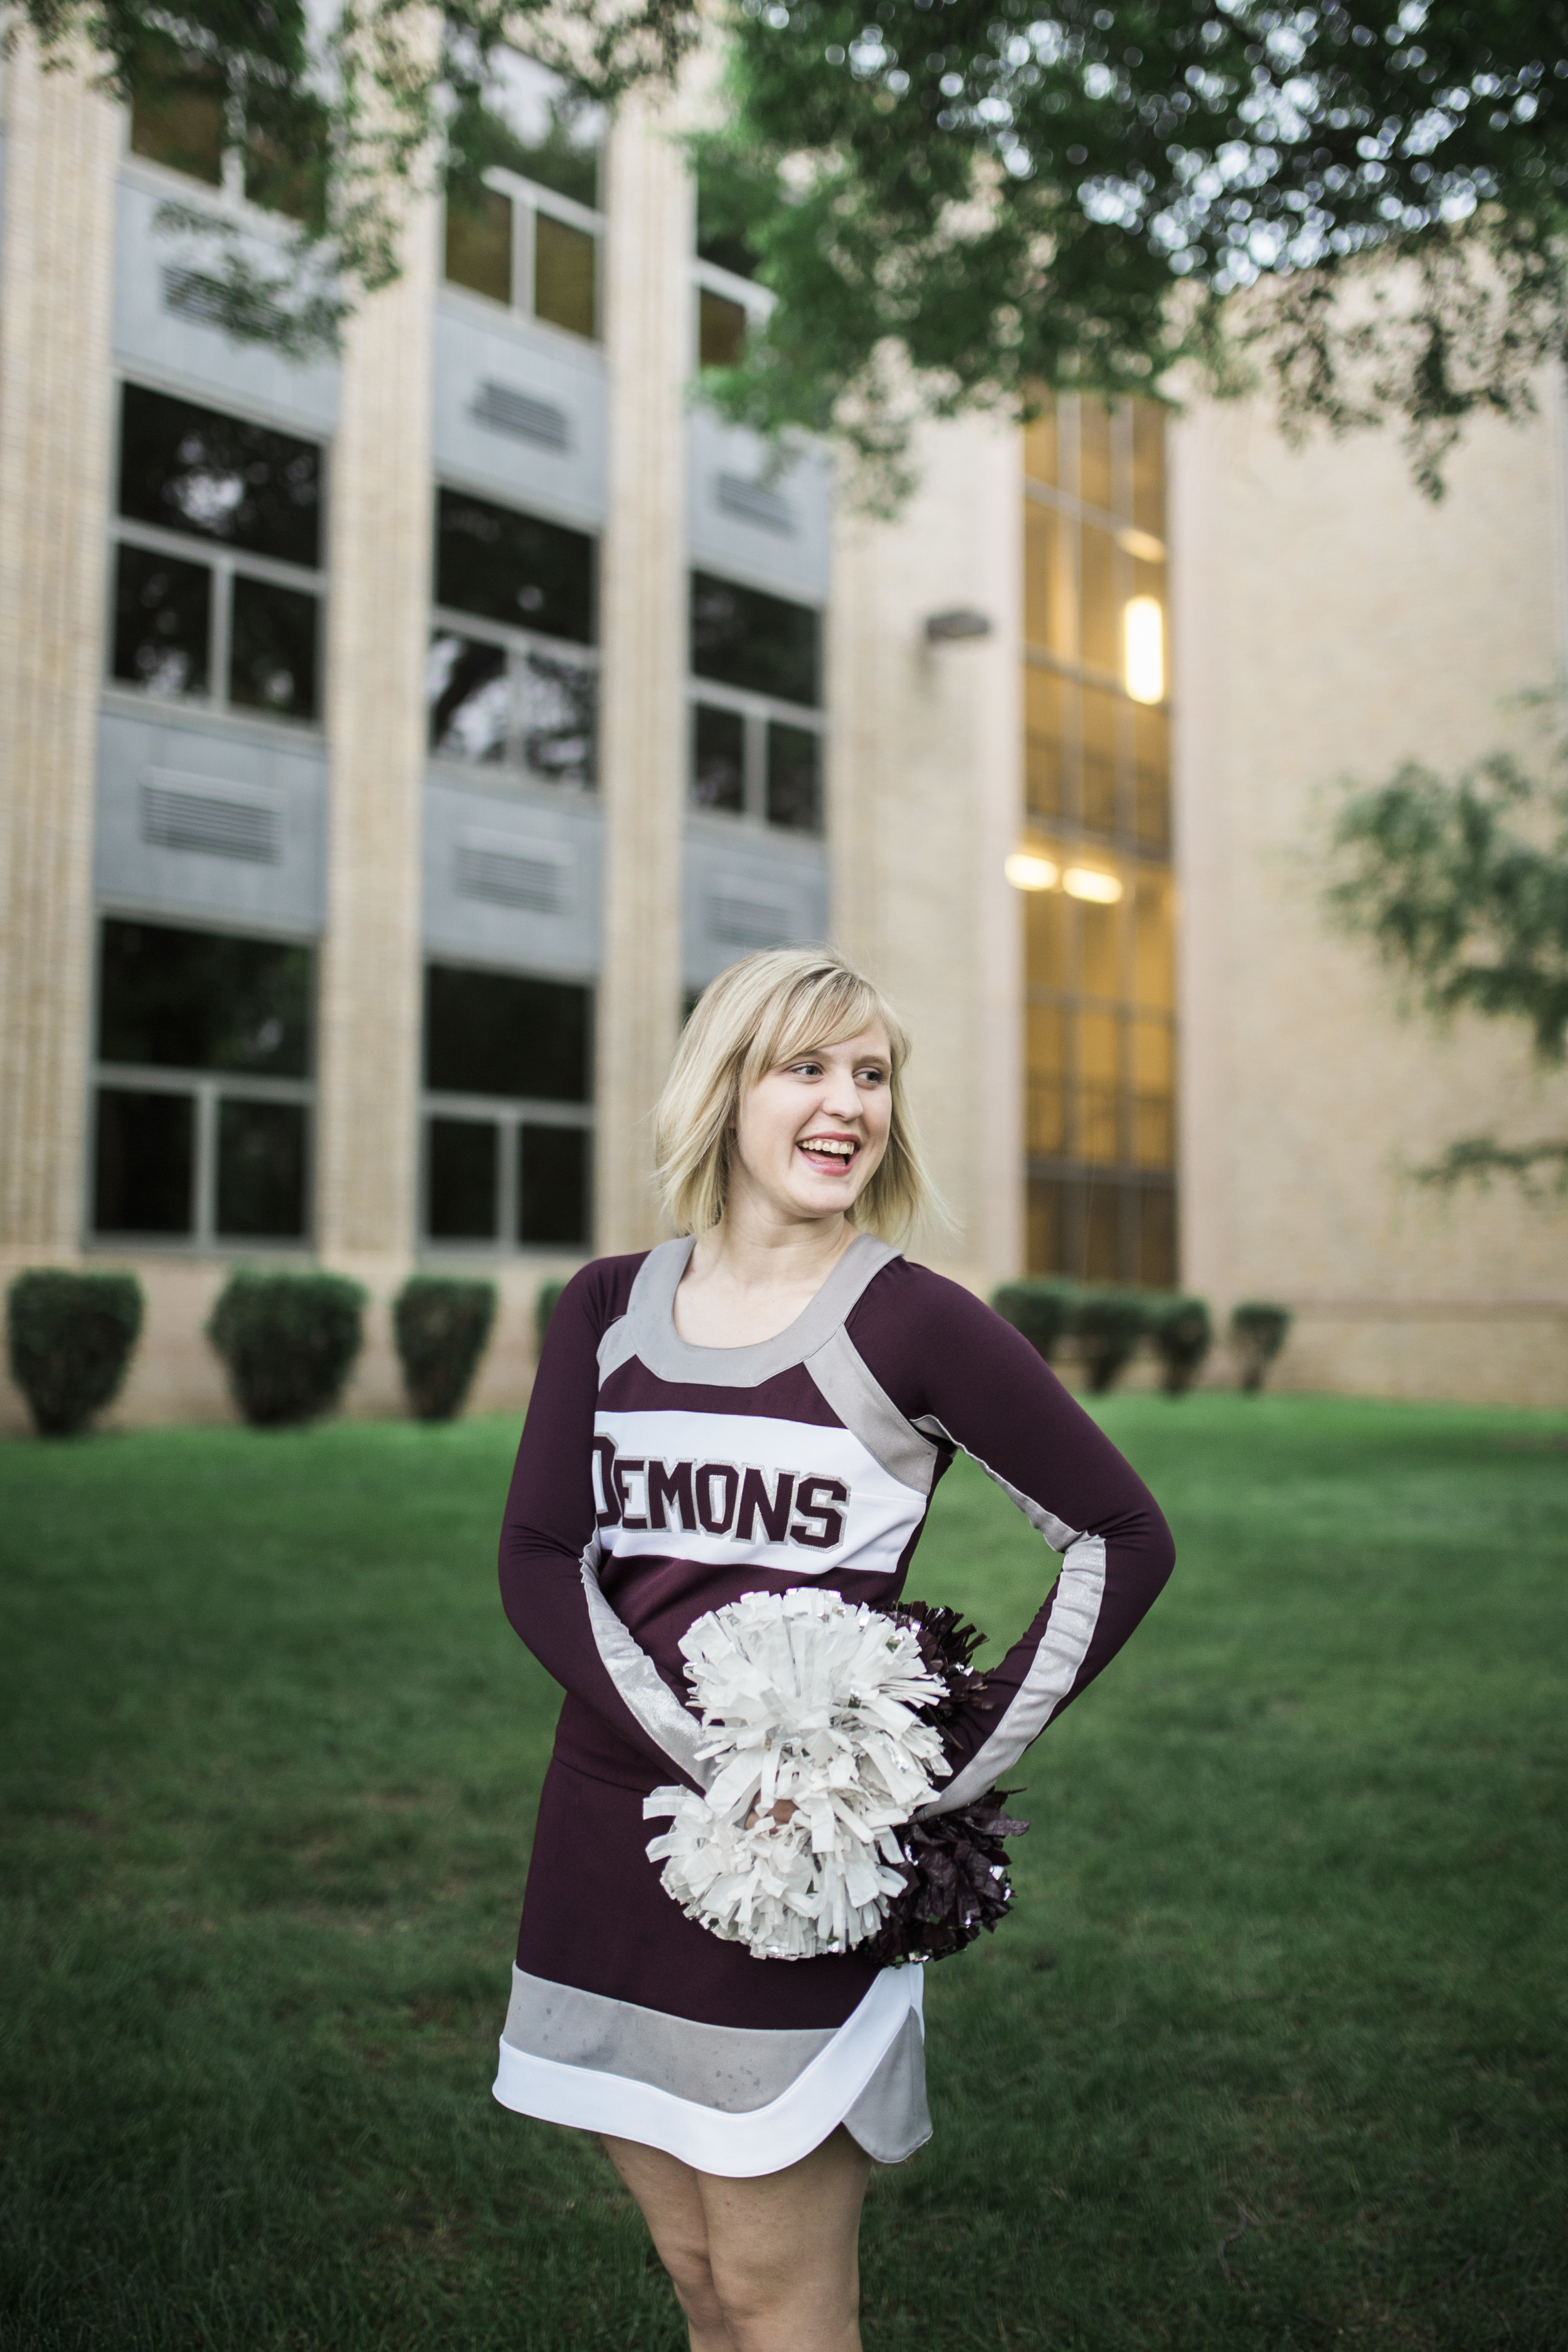 Megan loves cheerleading so we went to where she cheers at her high school.